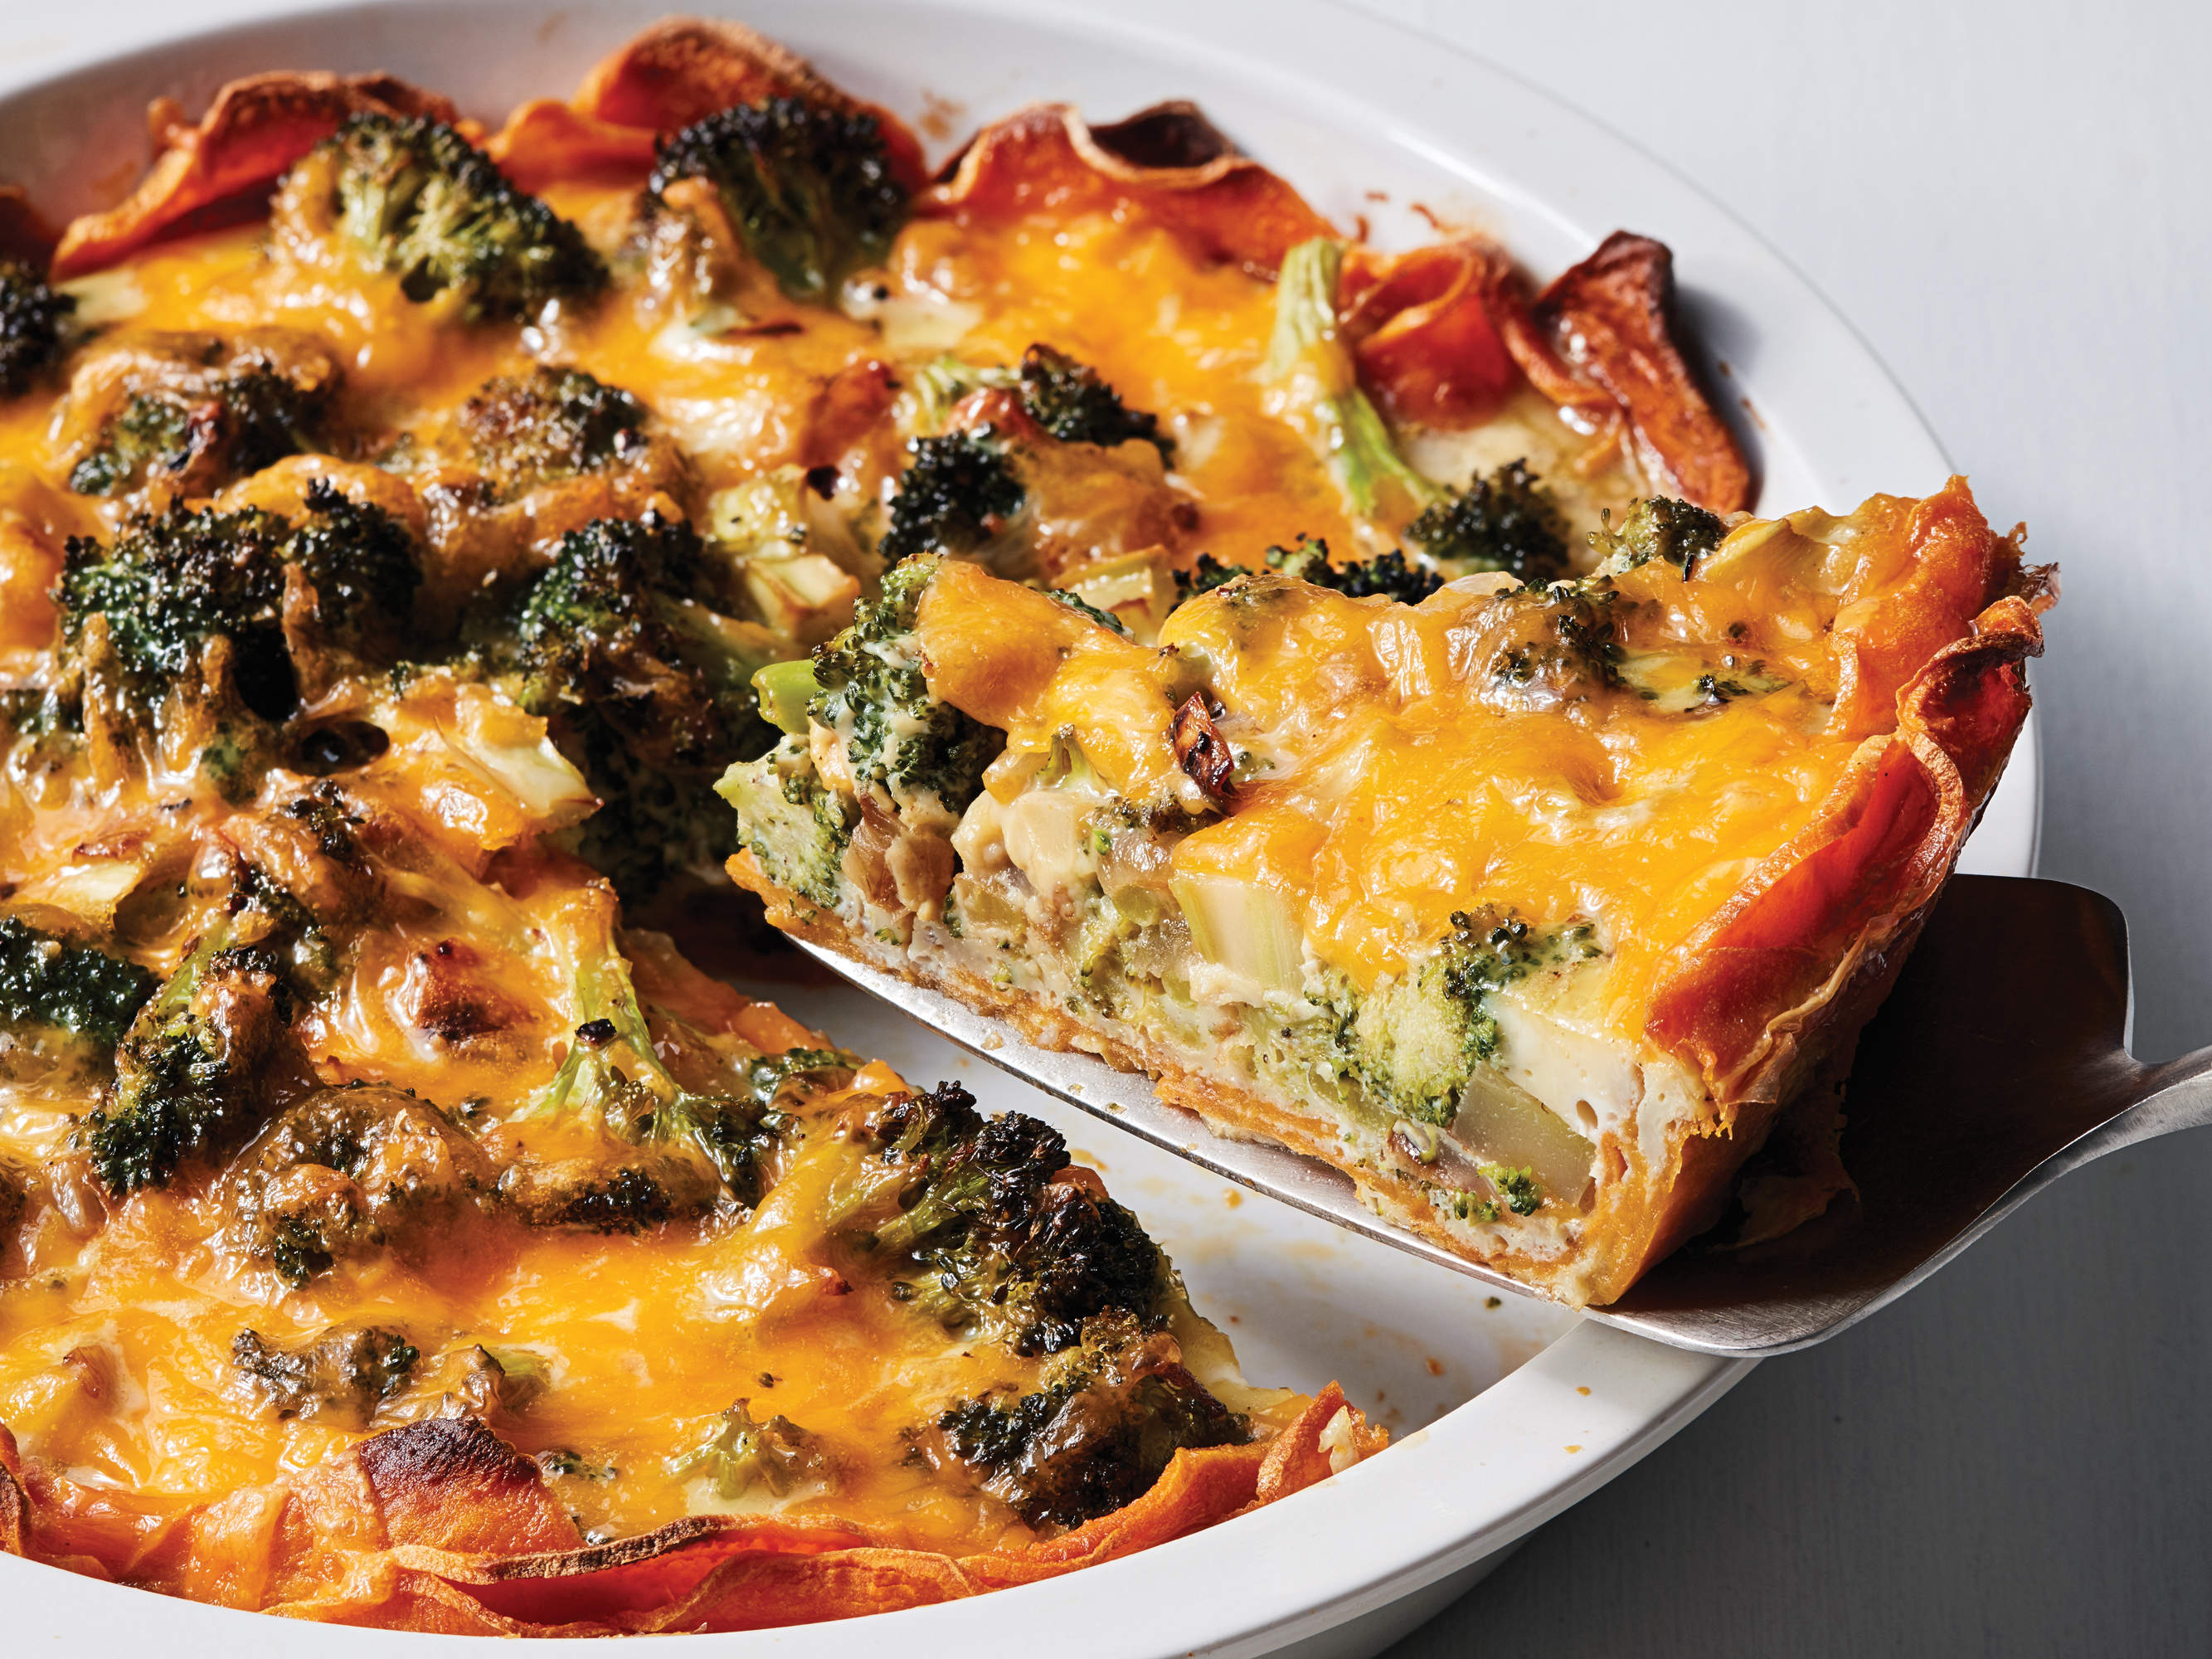 broccoli-cheddar-quiche-sweet-potato-recipe